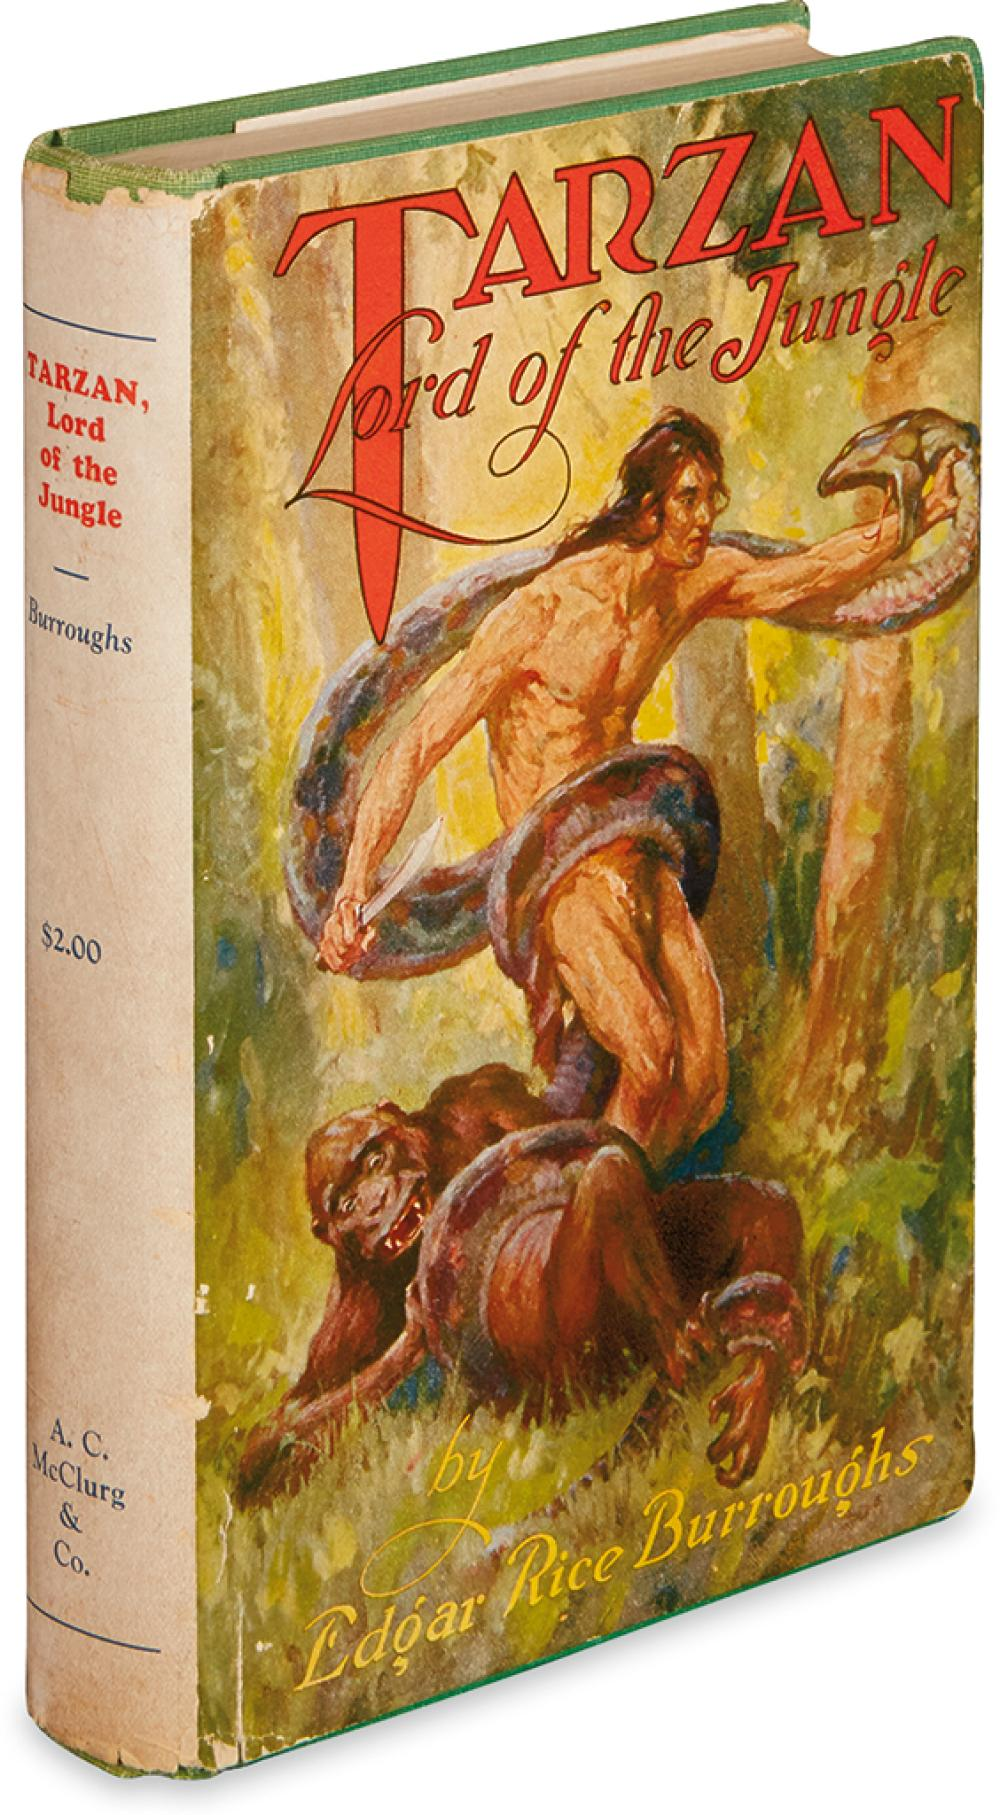 BURROUGHS, EDGAR RICE. Tarzan, Lord of the Jungle.